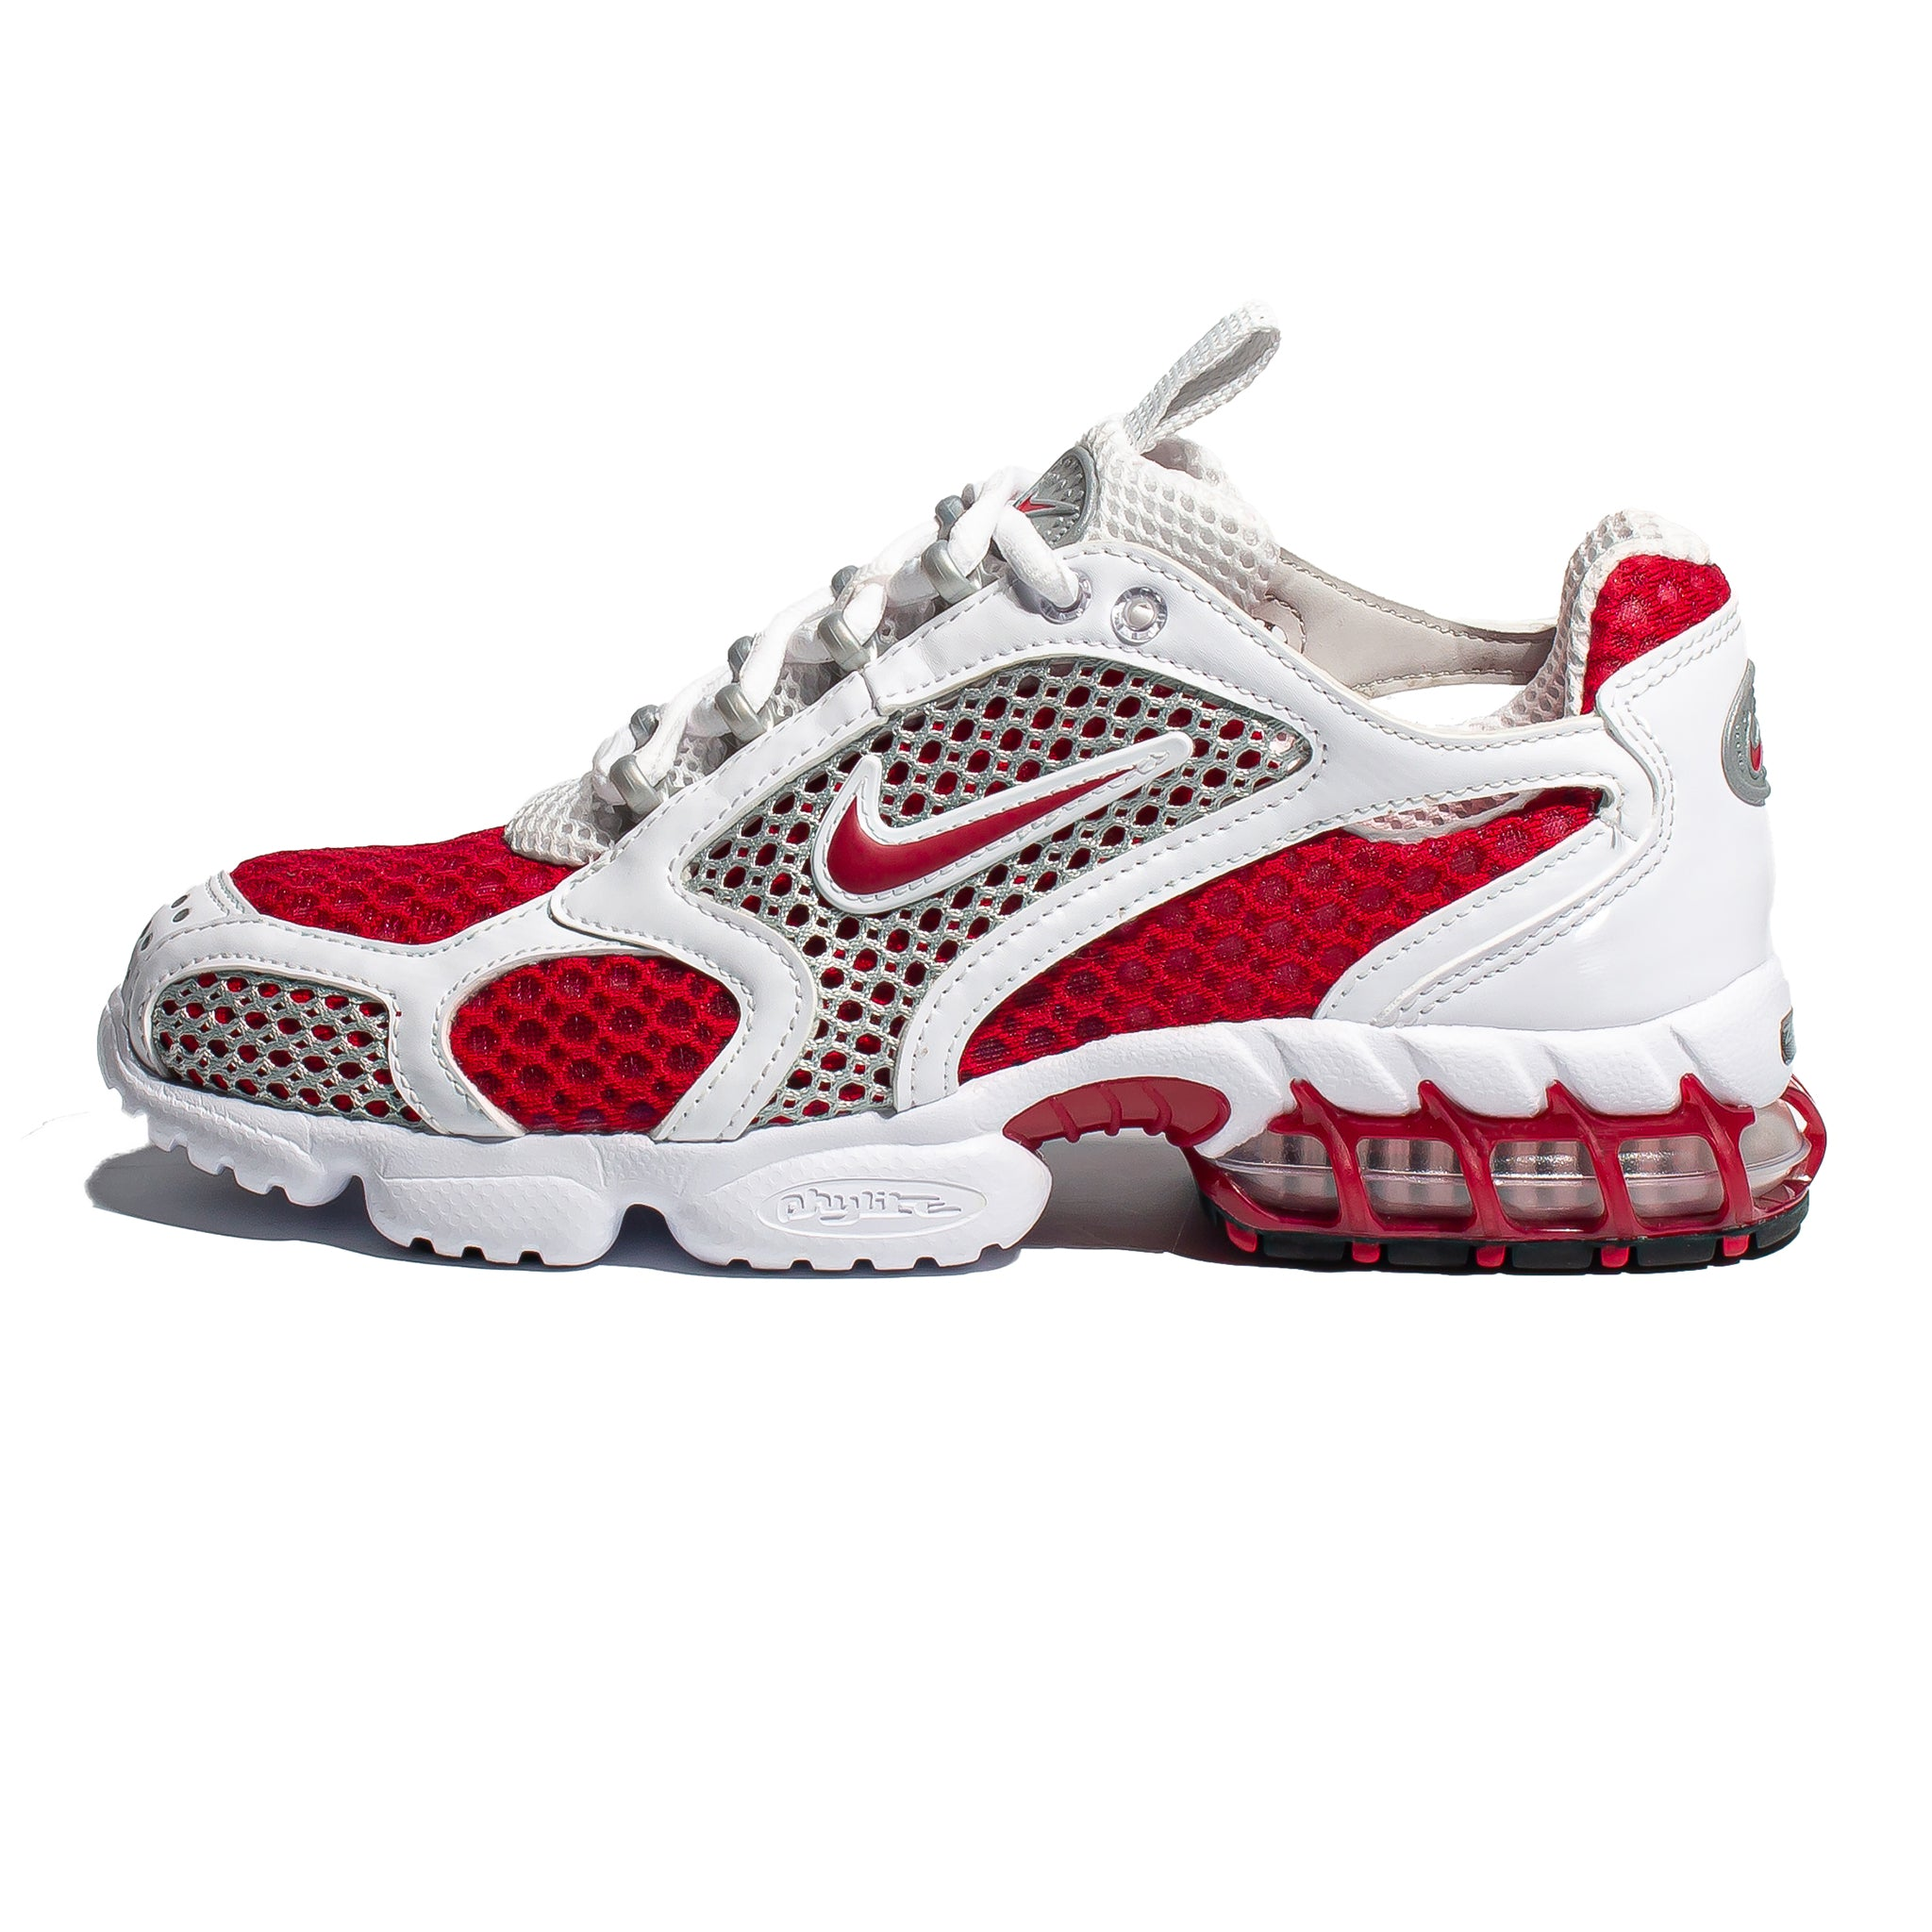 Nike Air Zoom Spiridon Cage 2 'Cardinal Red'